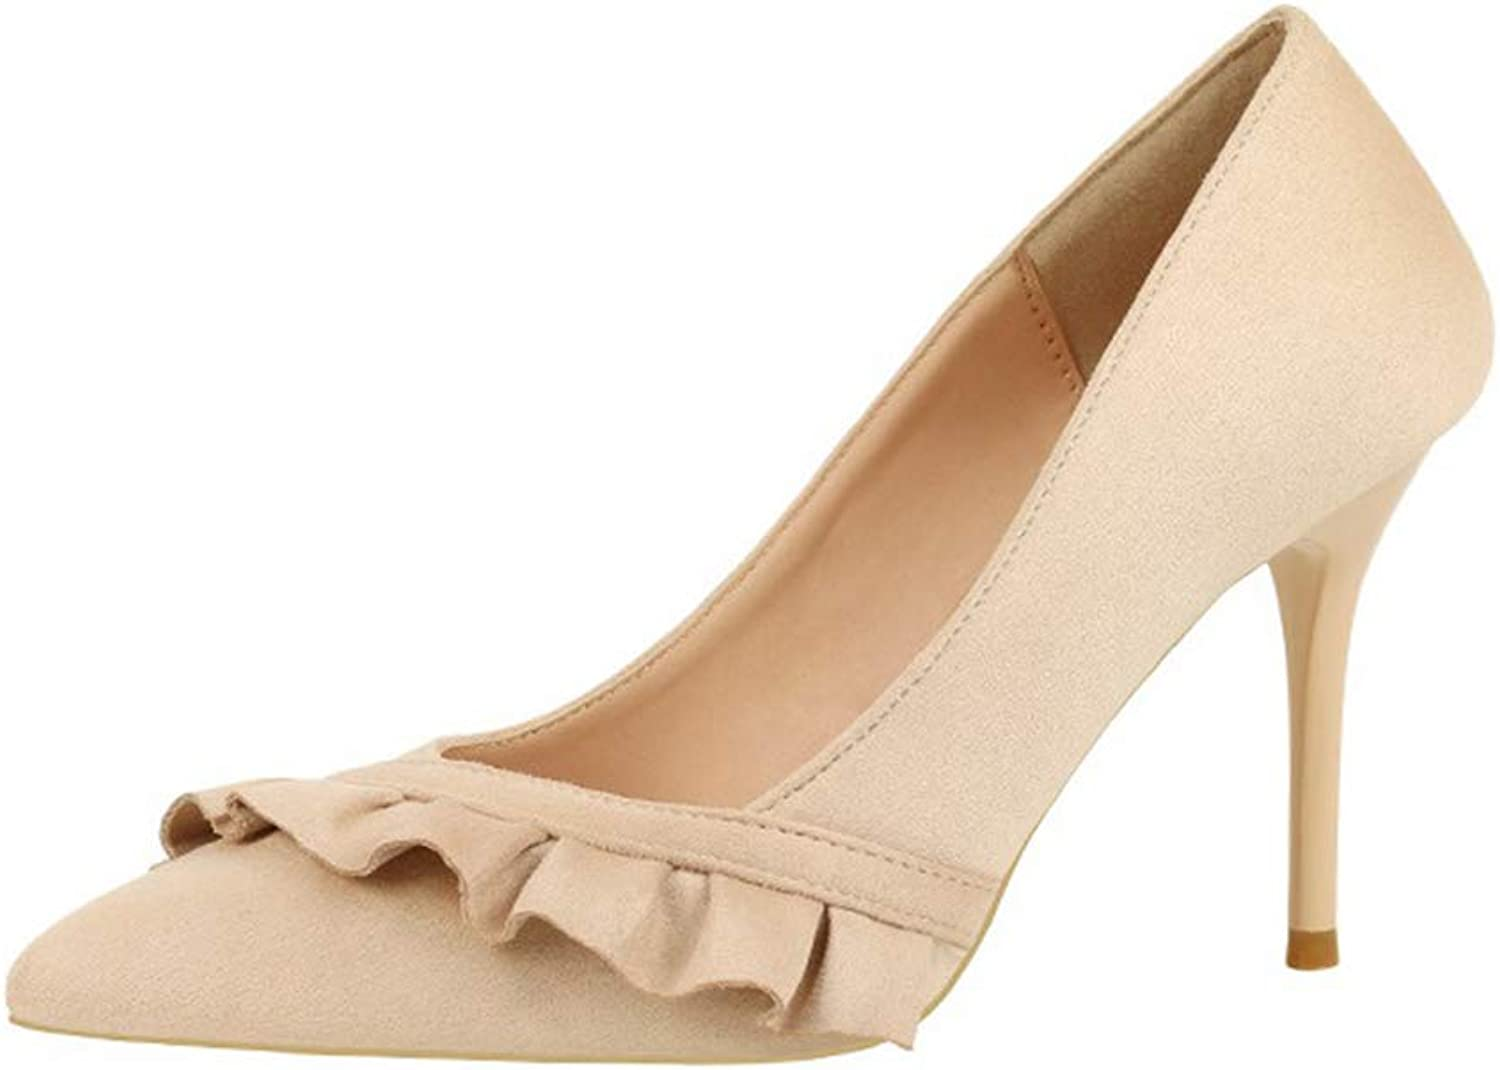 Kyle Walsh Pa Women OL Pumps Ladies Elegant High-Heeled Office shoes Pointed Toe Stiletto